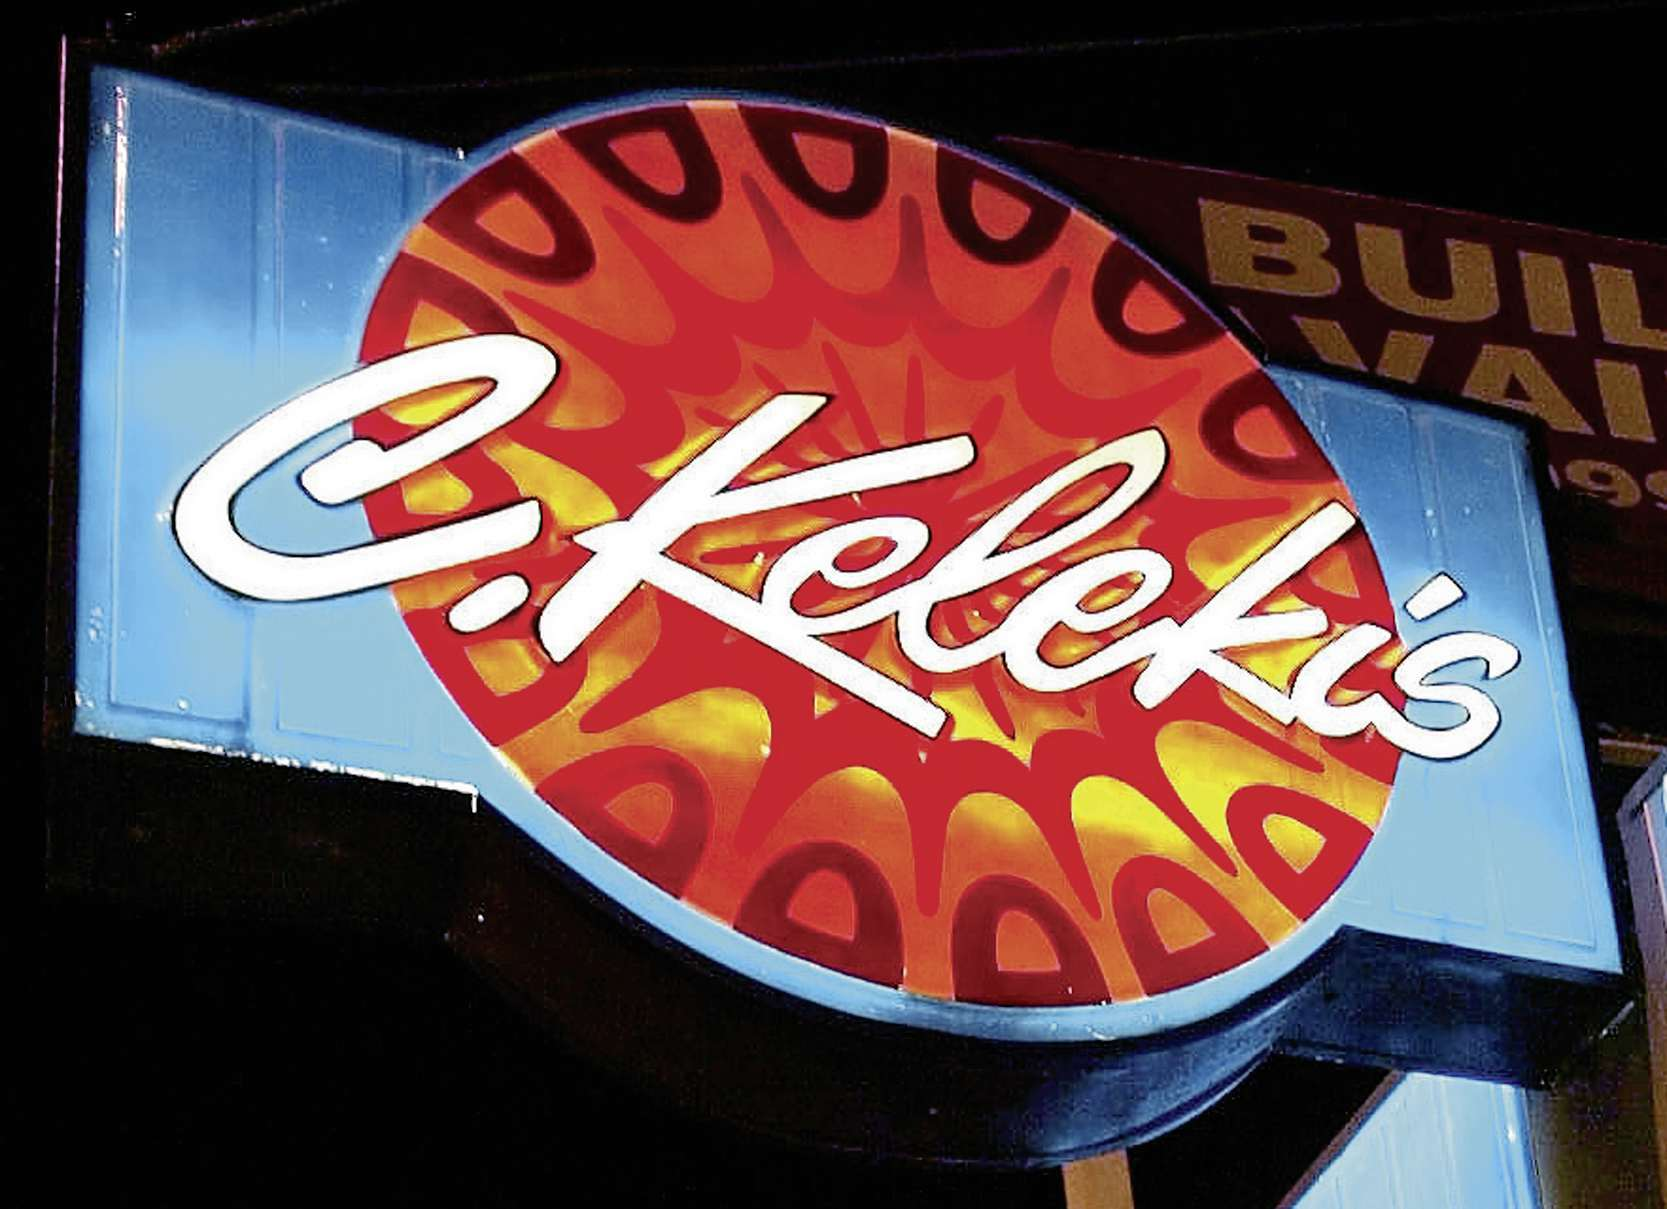 C. Kelekis was beloved for its legendary hotdogs, burgers and fries.